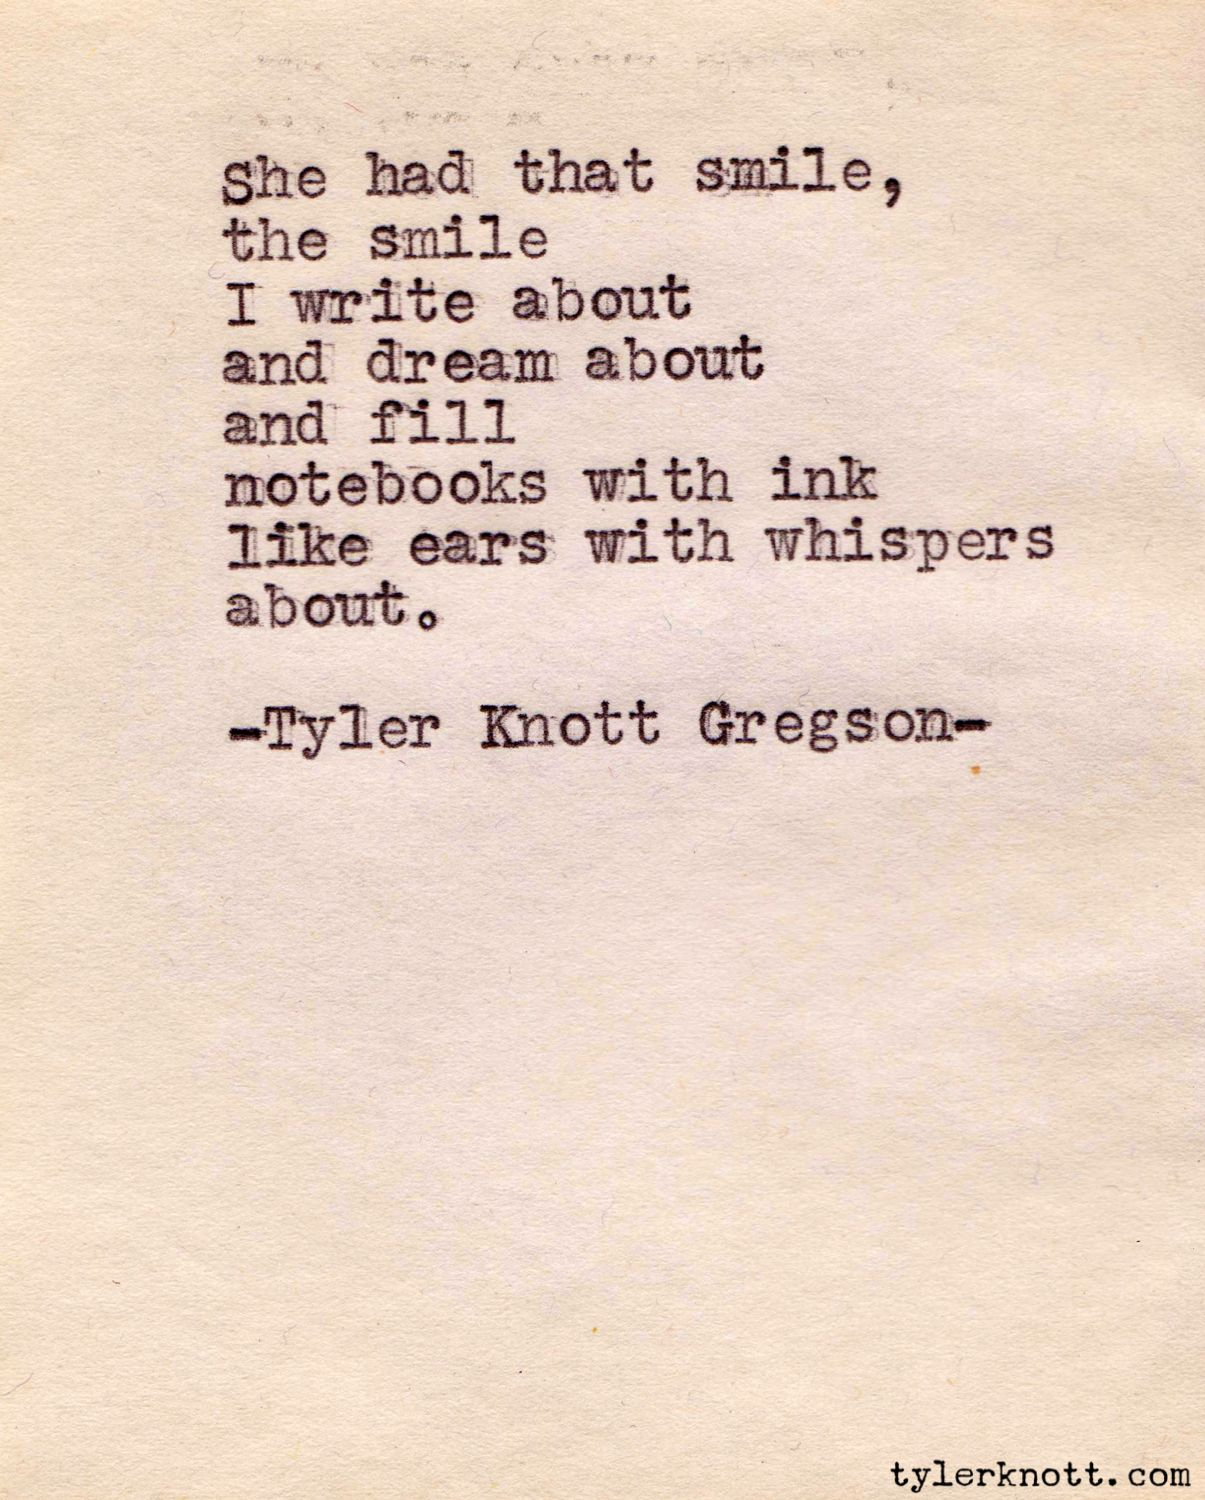 Smile poems and quotes - She Had That Smile The Smile I Write About And Dream About And Fill Notebooks